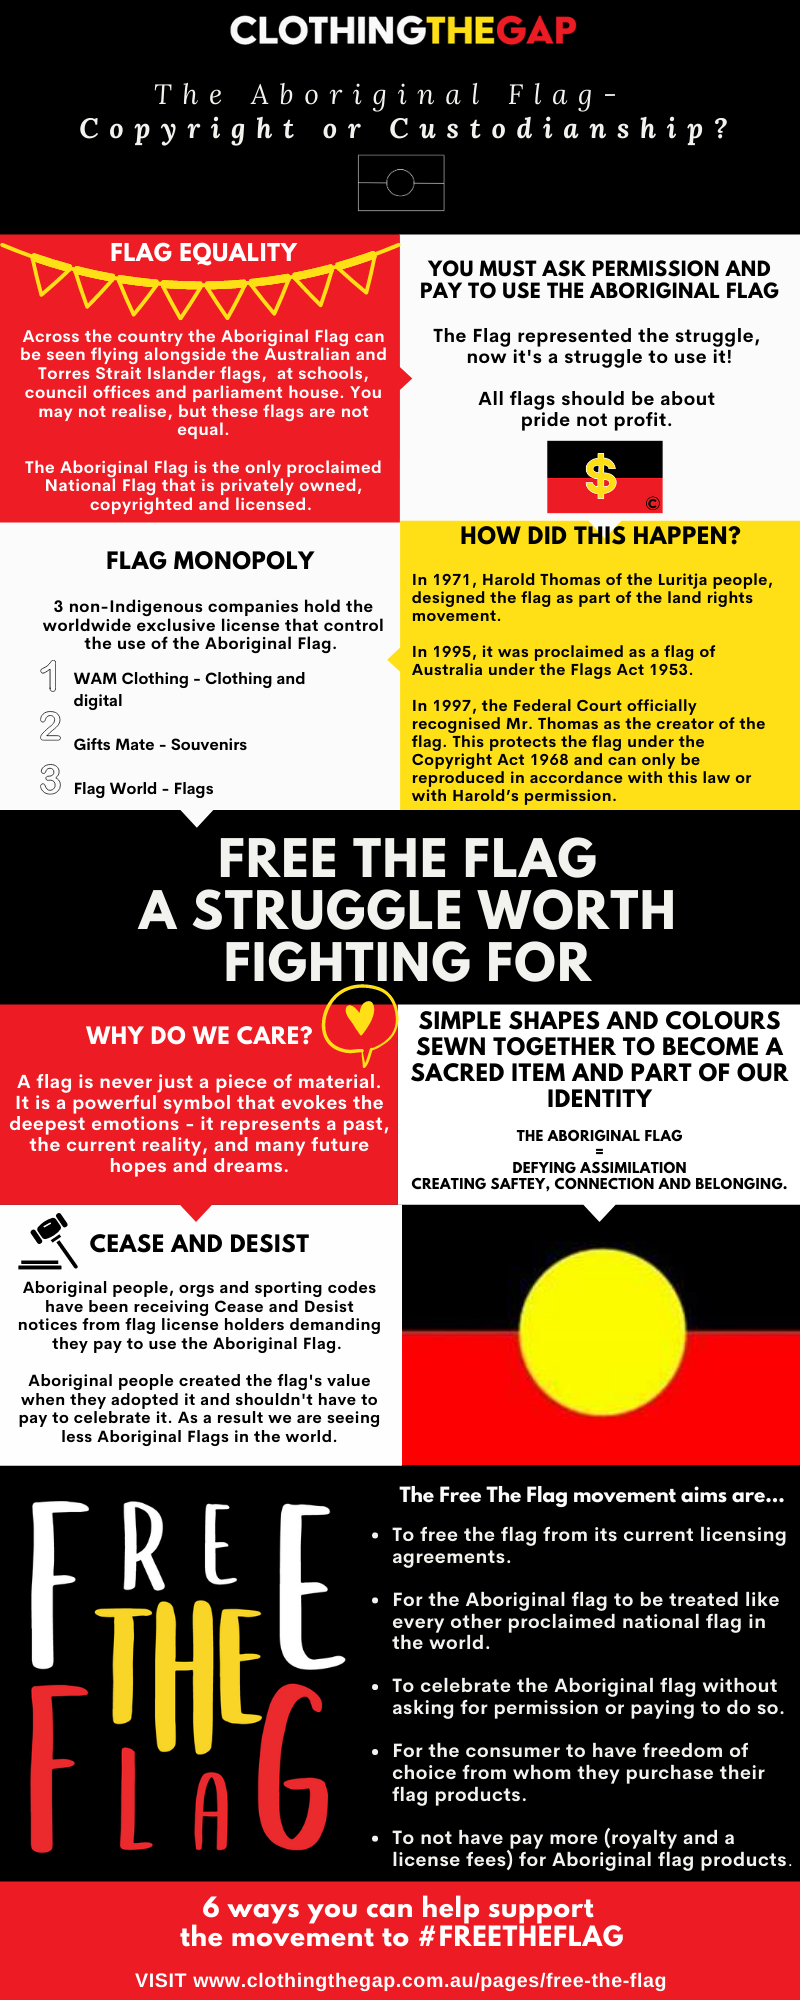 Clothing The Gap Free The Flag Aboriginal Flag Copyright